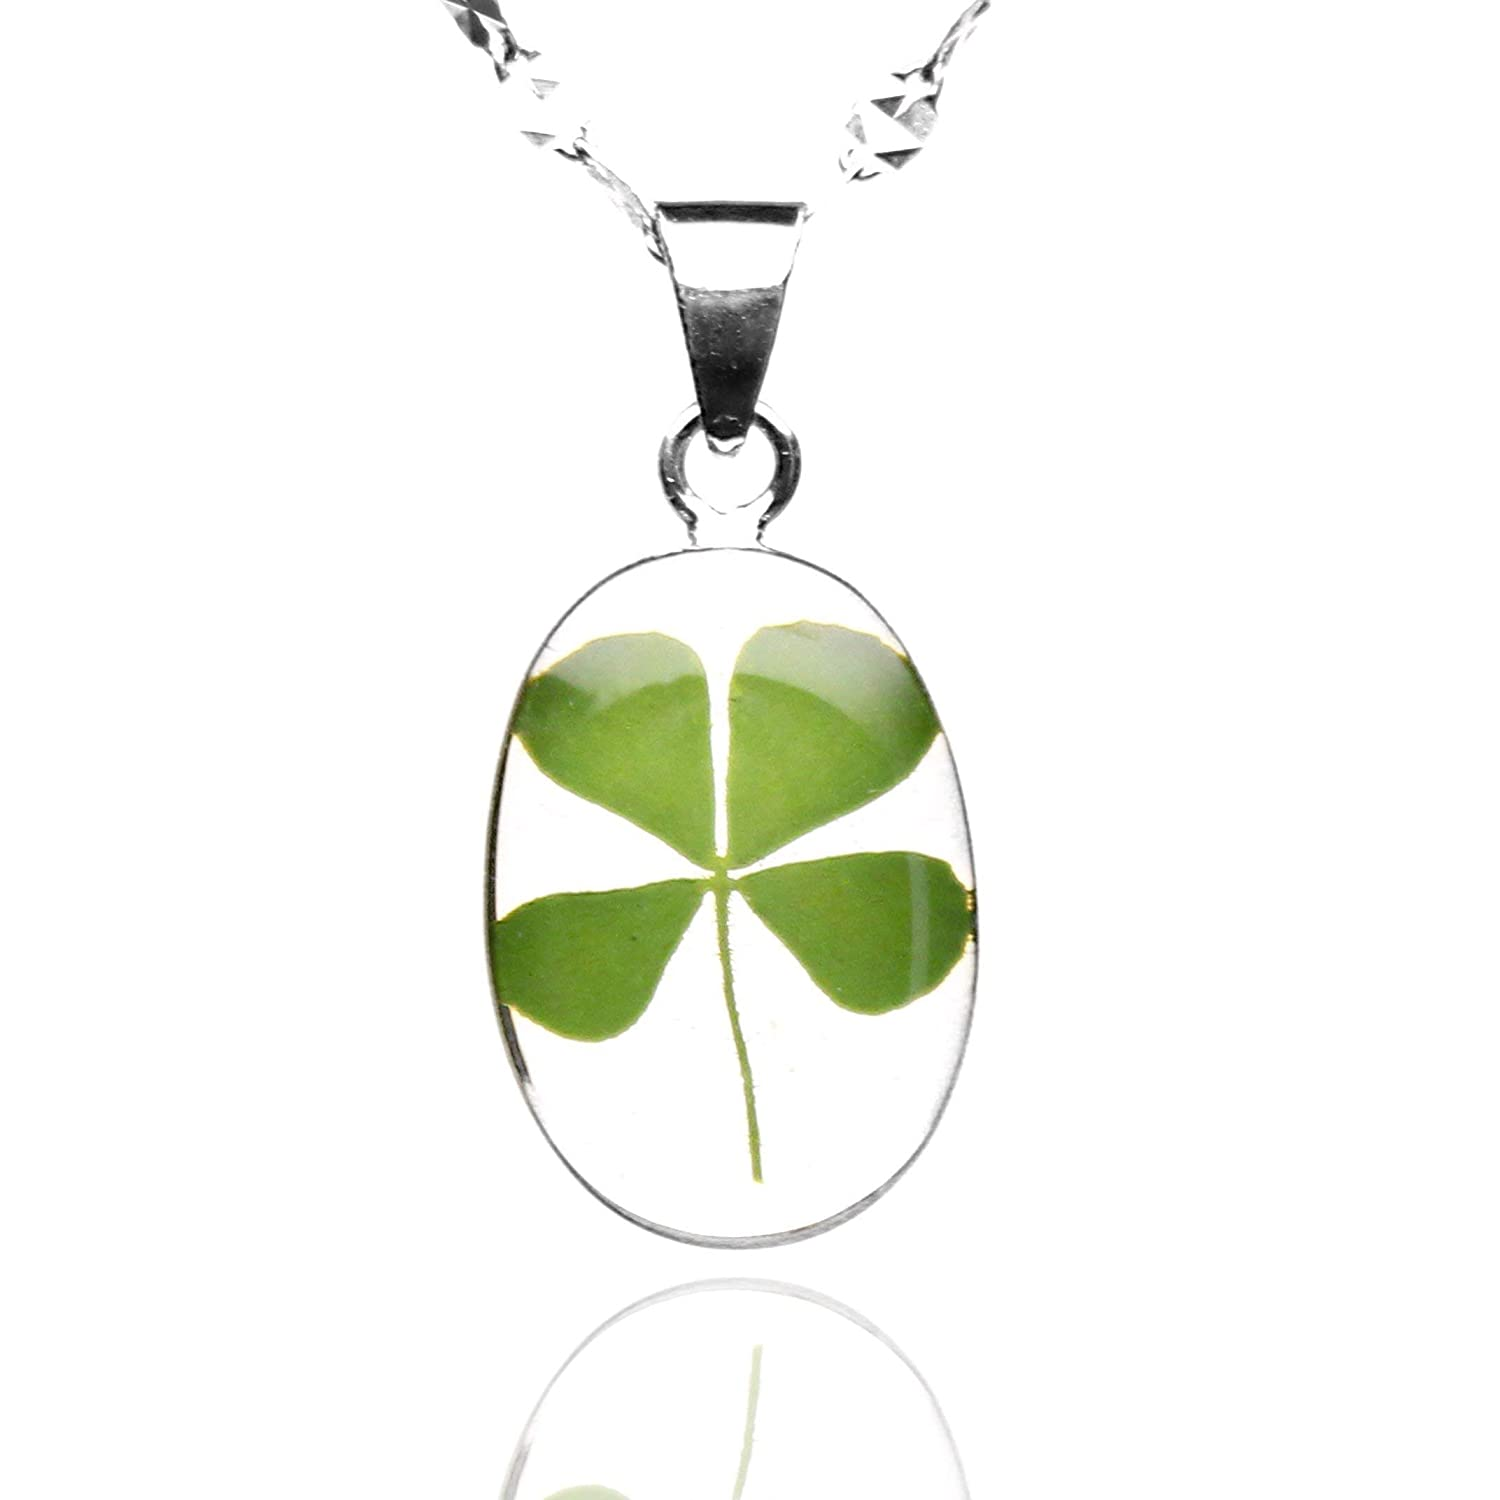 Sterling Silver Necklace by TAMI - Floral Jewelry - with Real Natural Four Leaf Clover Green Shamrock and 17.7 inches .925 Frosty Chain, Good Luck Charm for St Patrick's Day includes Gift Box